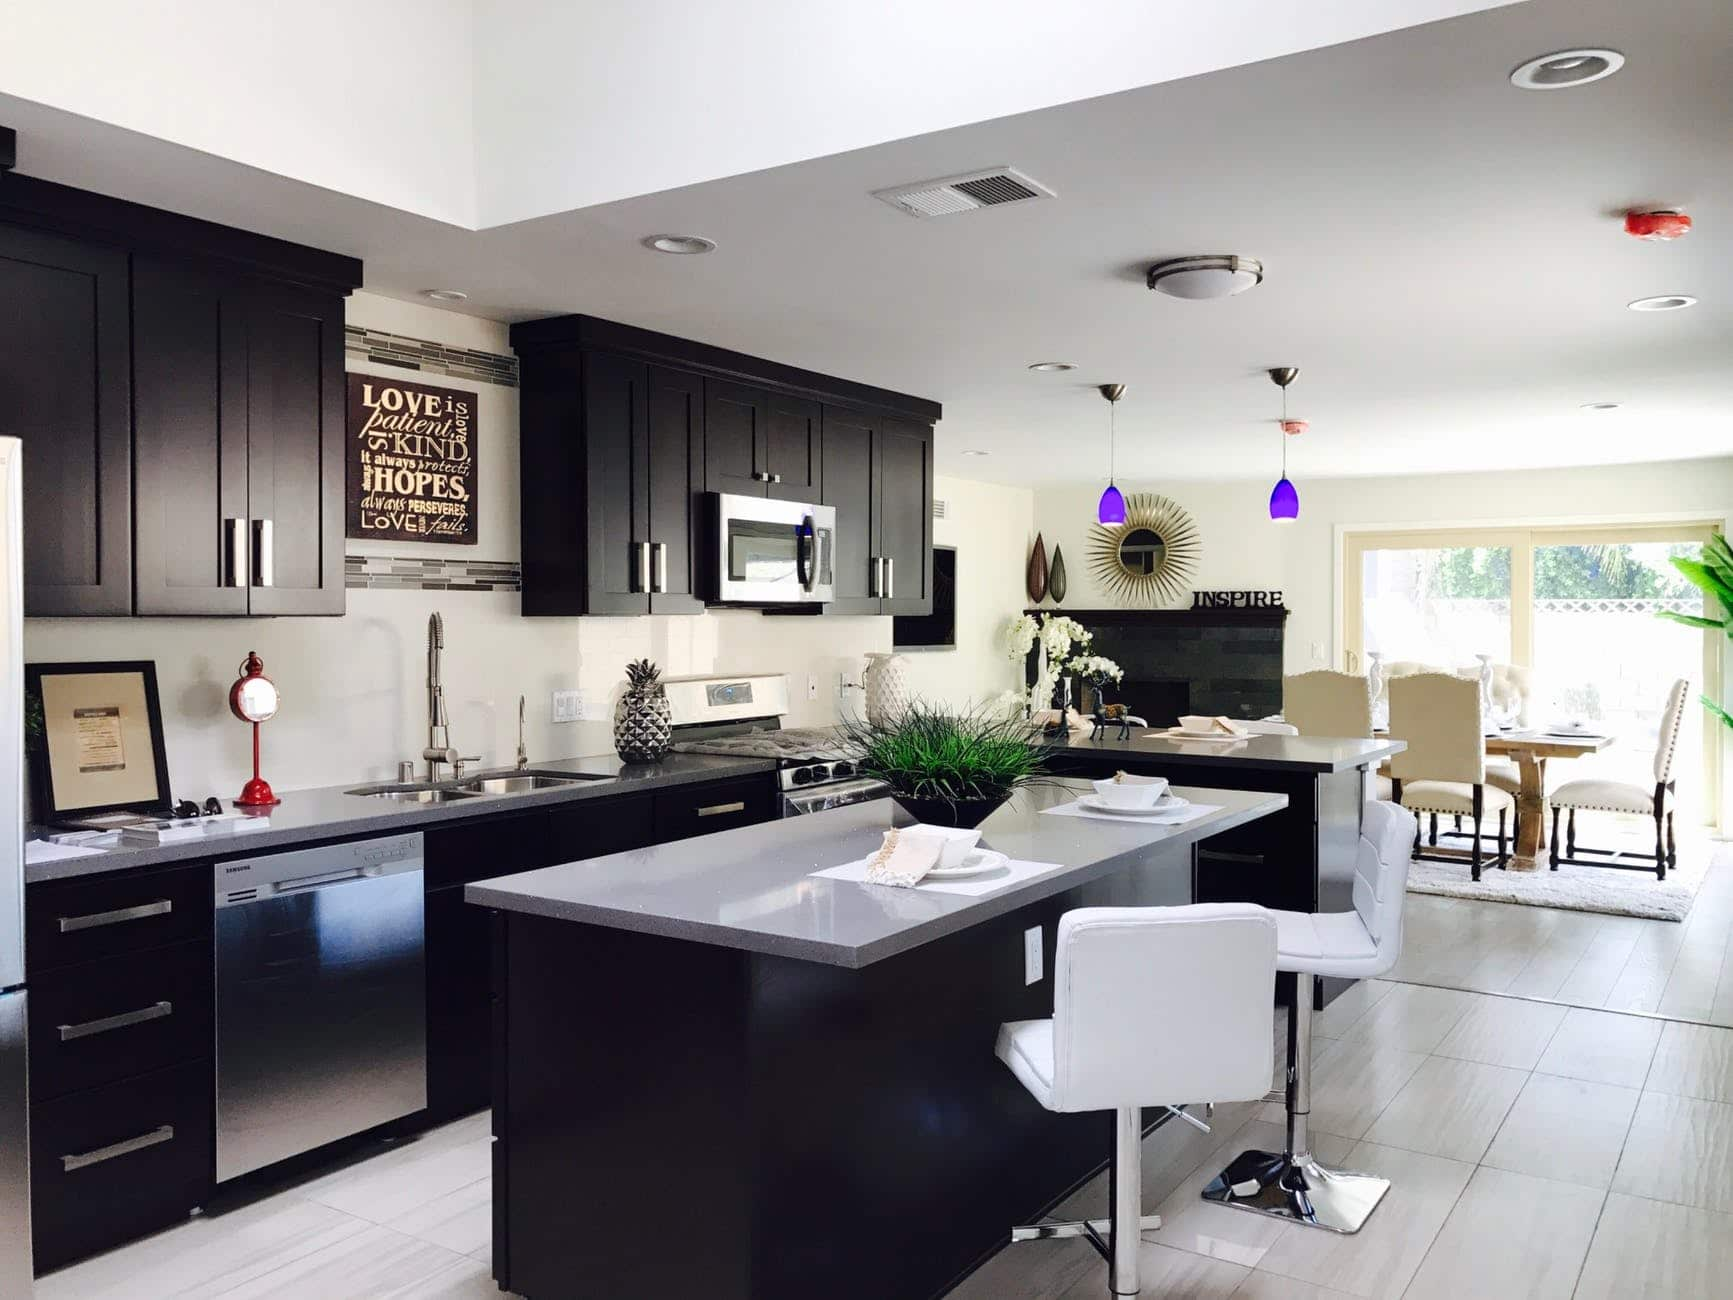 Experts Reveal Top Tips For A Small Kitchen Remodel In 2021 Expert Ideas To Revamp Your Small Kitchen